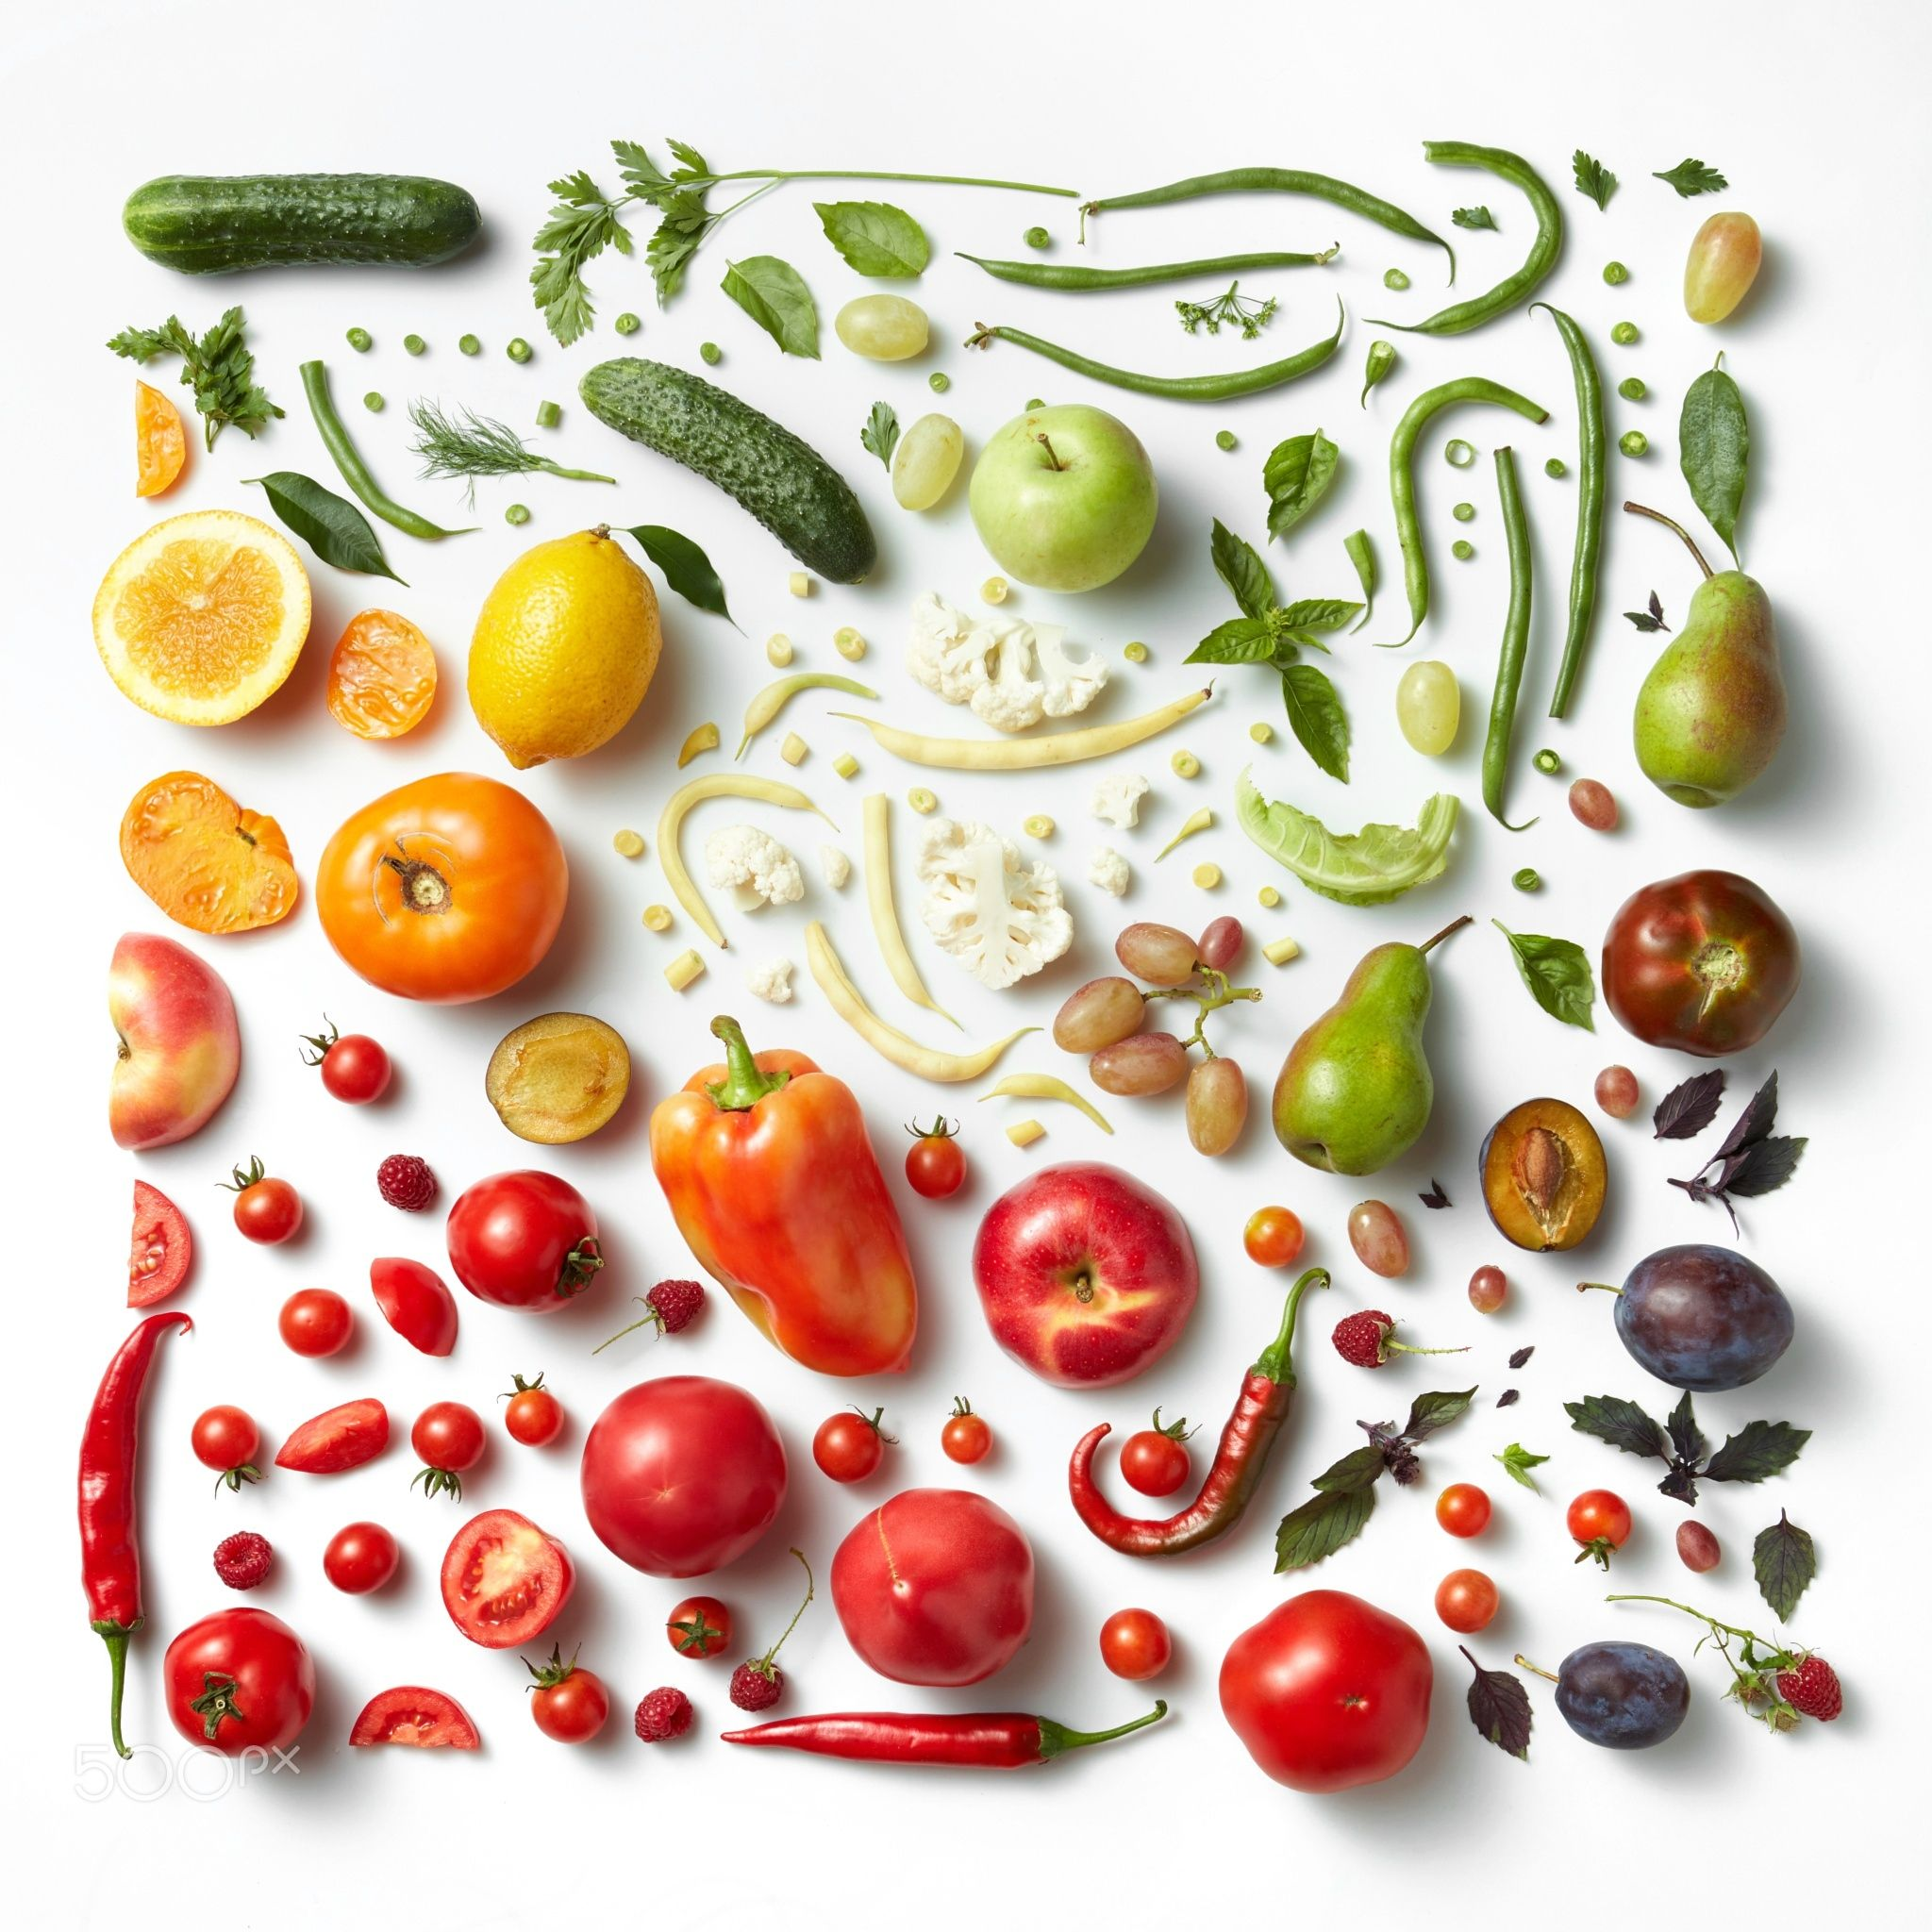 Healthy Eating Background Healthy Eating Pattern Background Studio Photography Of Dif Different Fruits And Vegetables Food Backgrounds Vegetables Photography